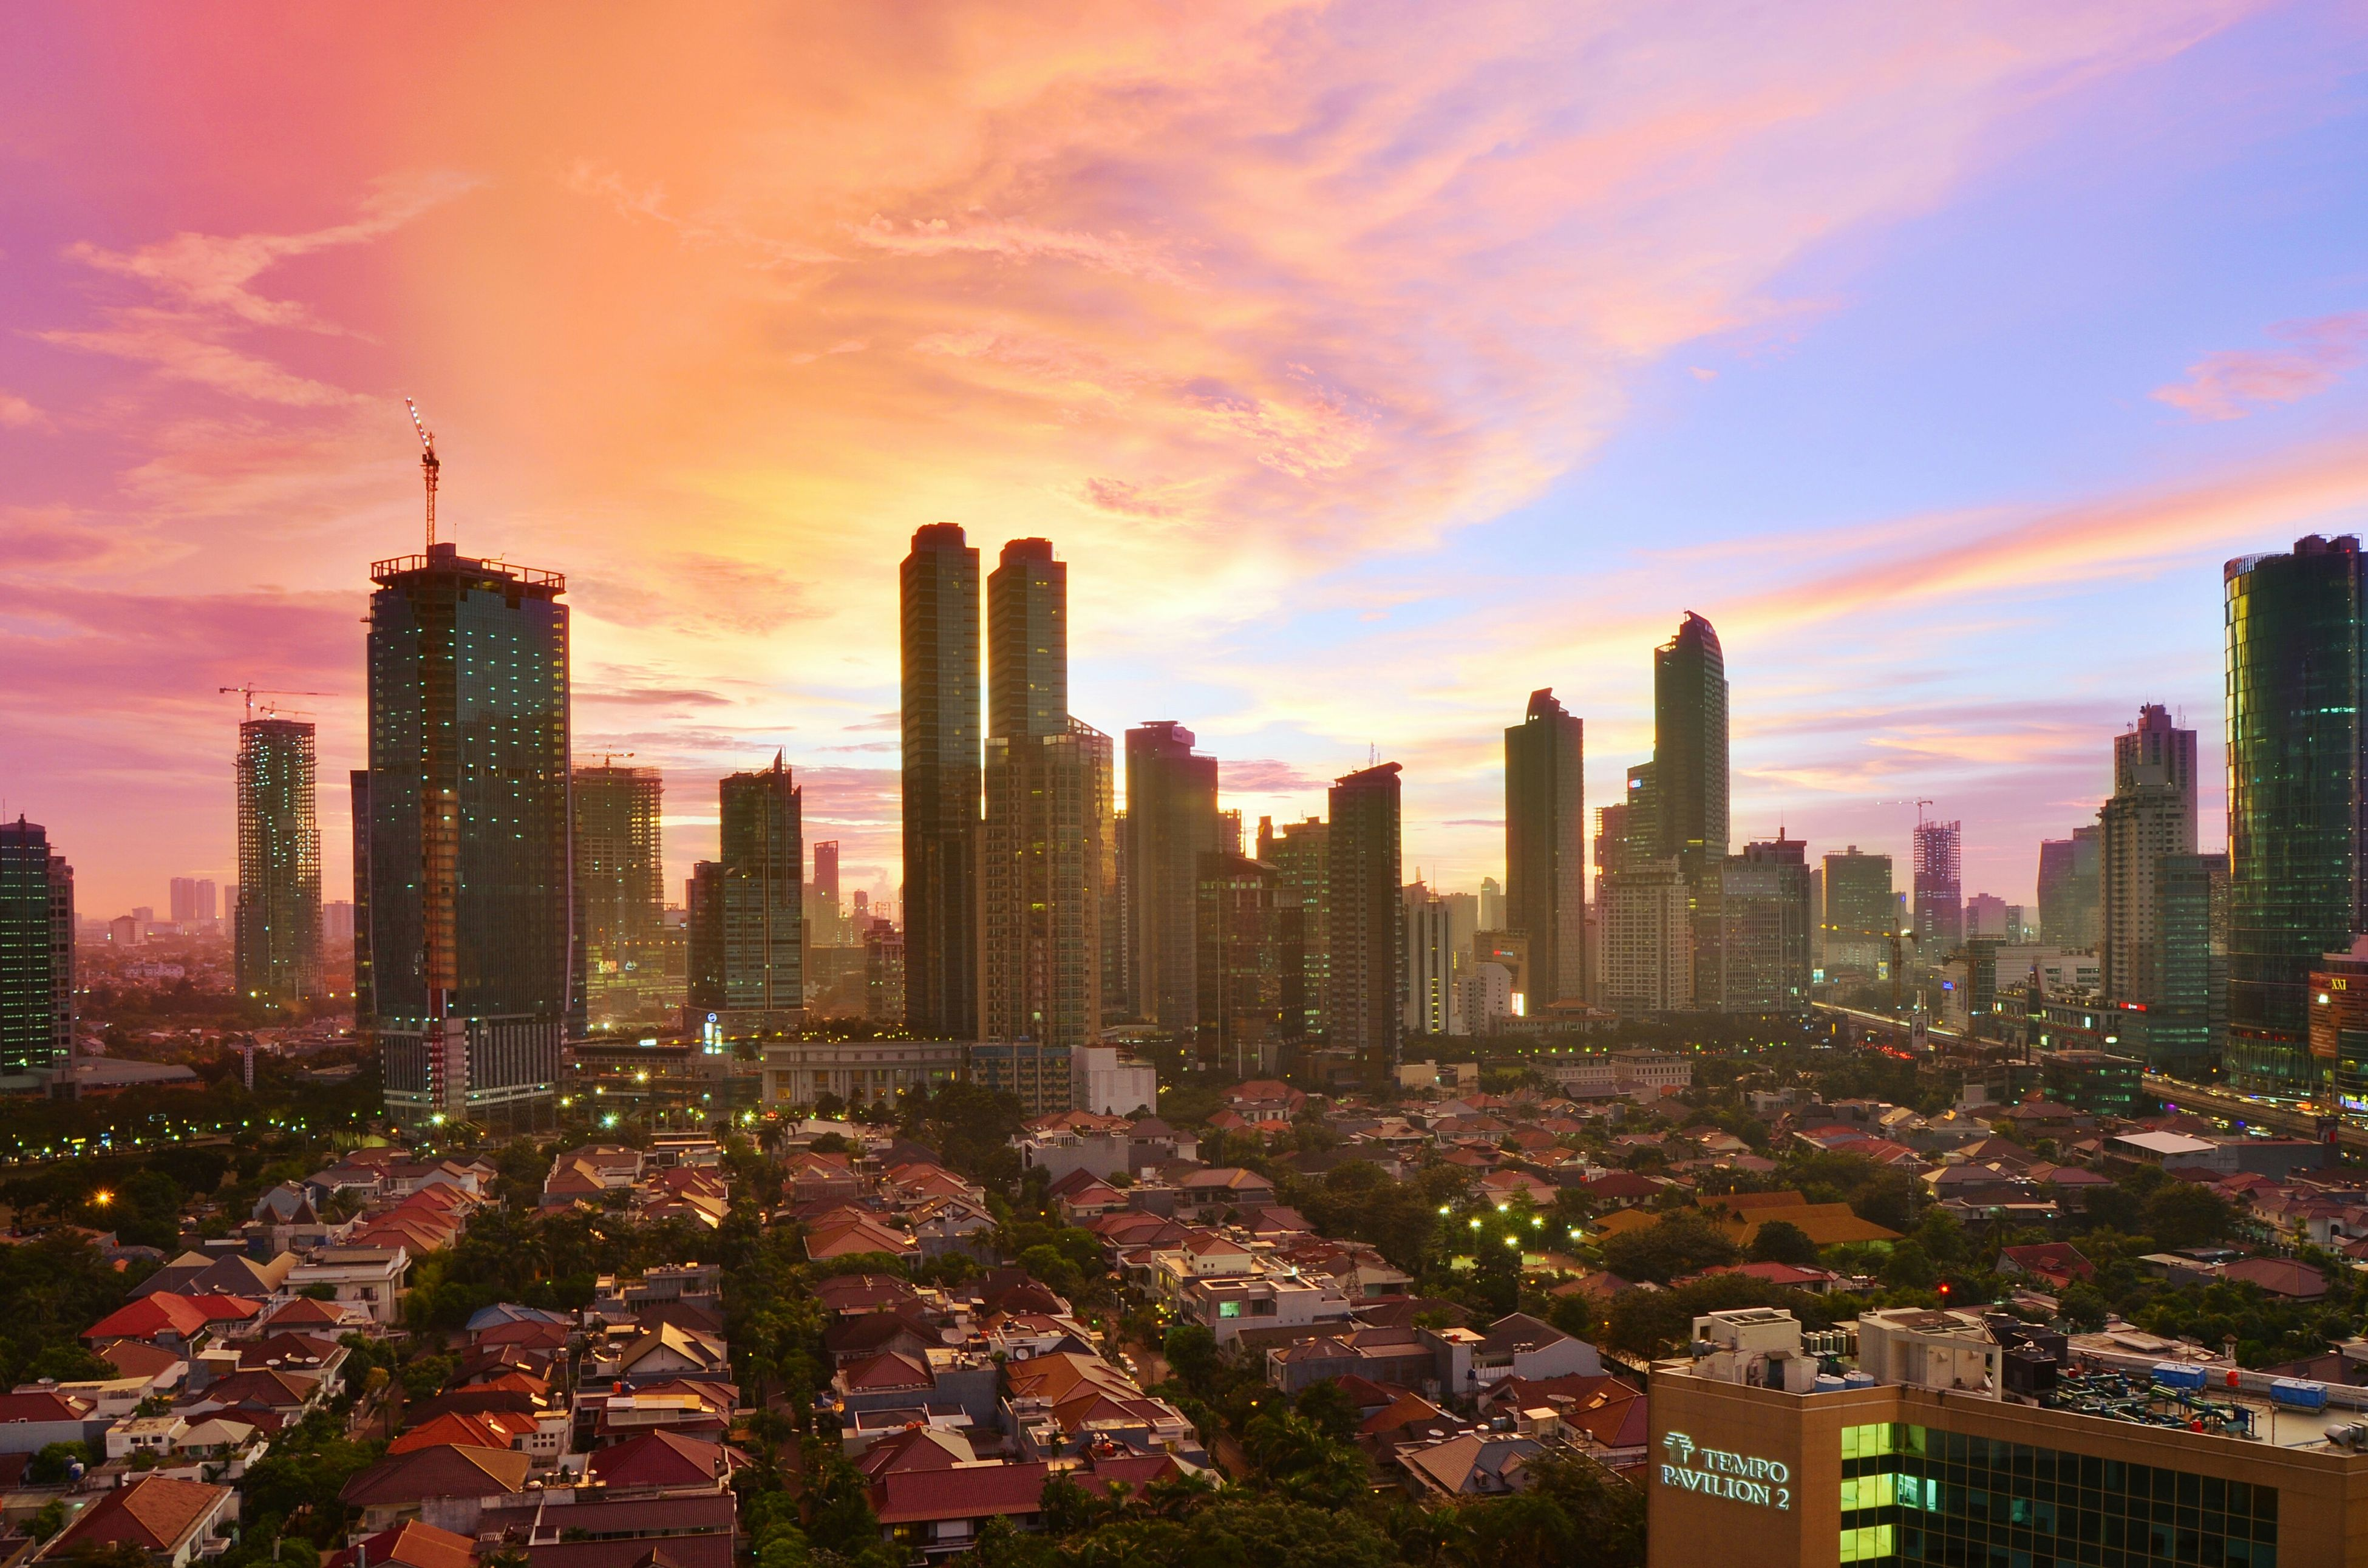 city, building exterior, cityscape, architecture, built structure, skyscraper, sunset, sky, high angle view, tall - high, tower, crowded, urban skyline, modern, orange color, cloud - sky, city life, office building, residential district, residential building